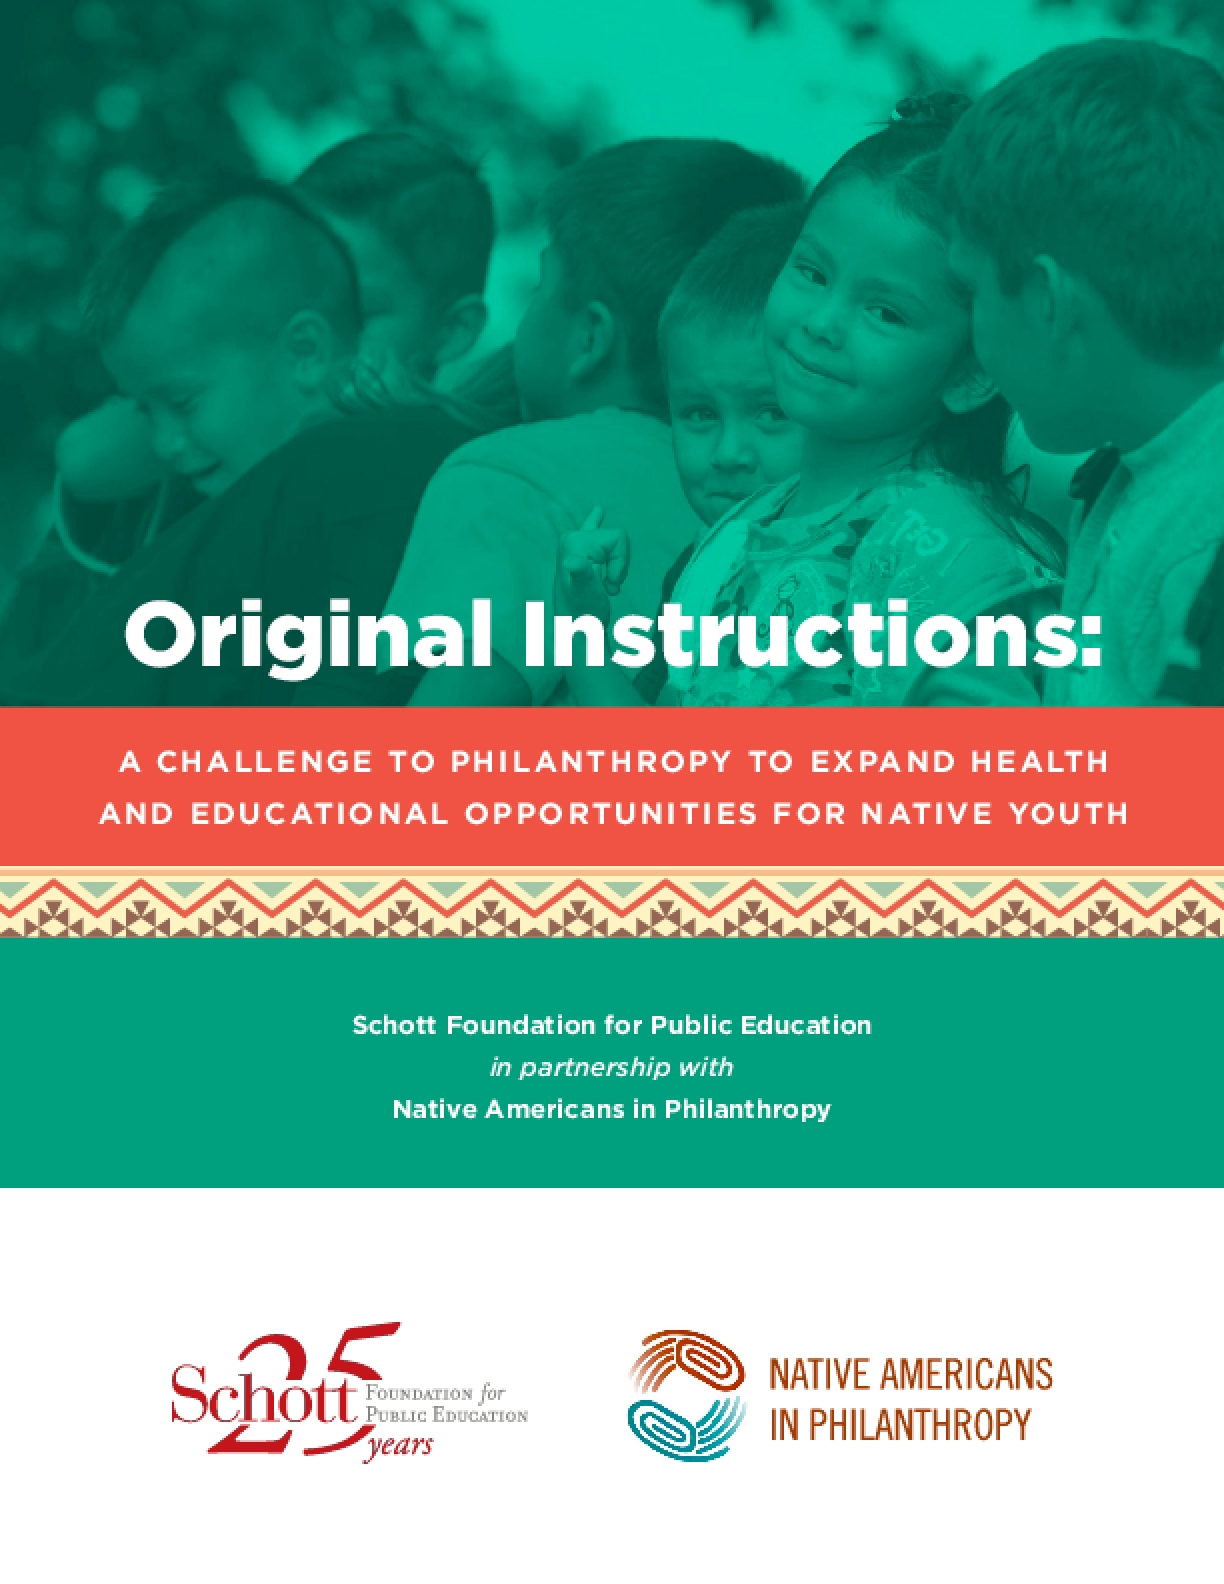 A Challenge to Philanthropy to Expand Health and Educational Opportunities for Native Youth